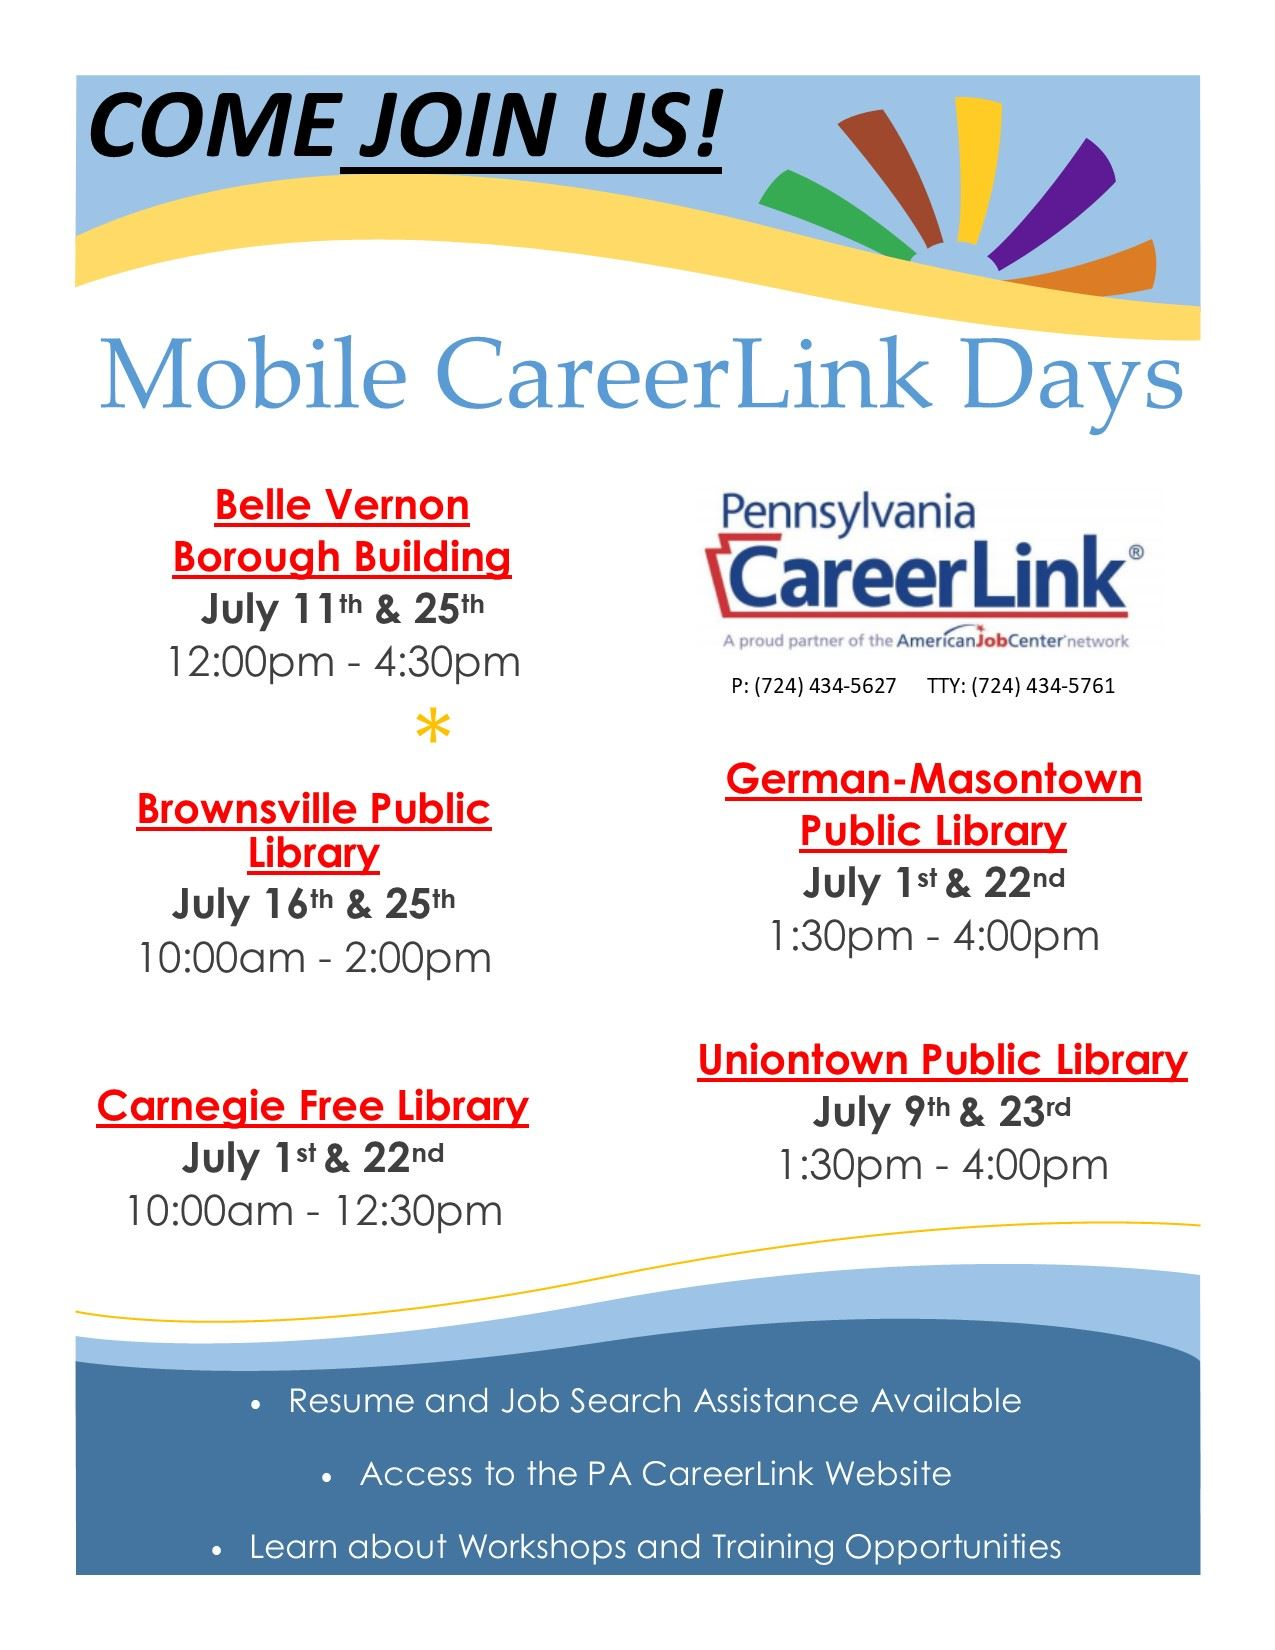 Flyer advertising Mobile CareerLink Days in Fayette County during the month of July 2019.